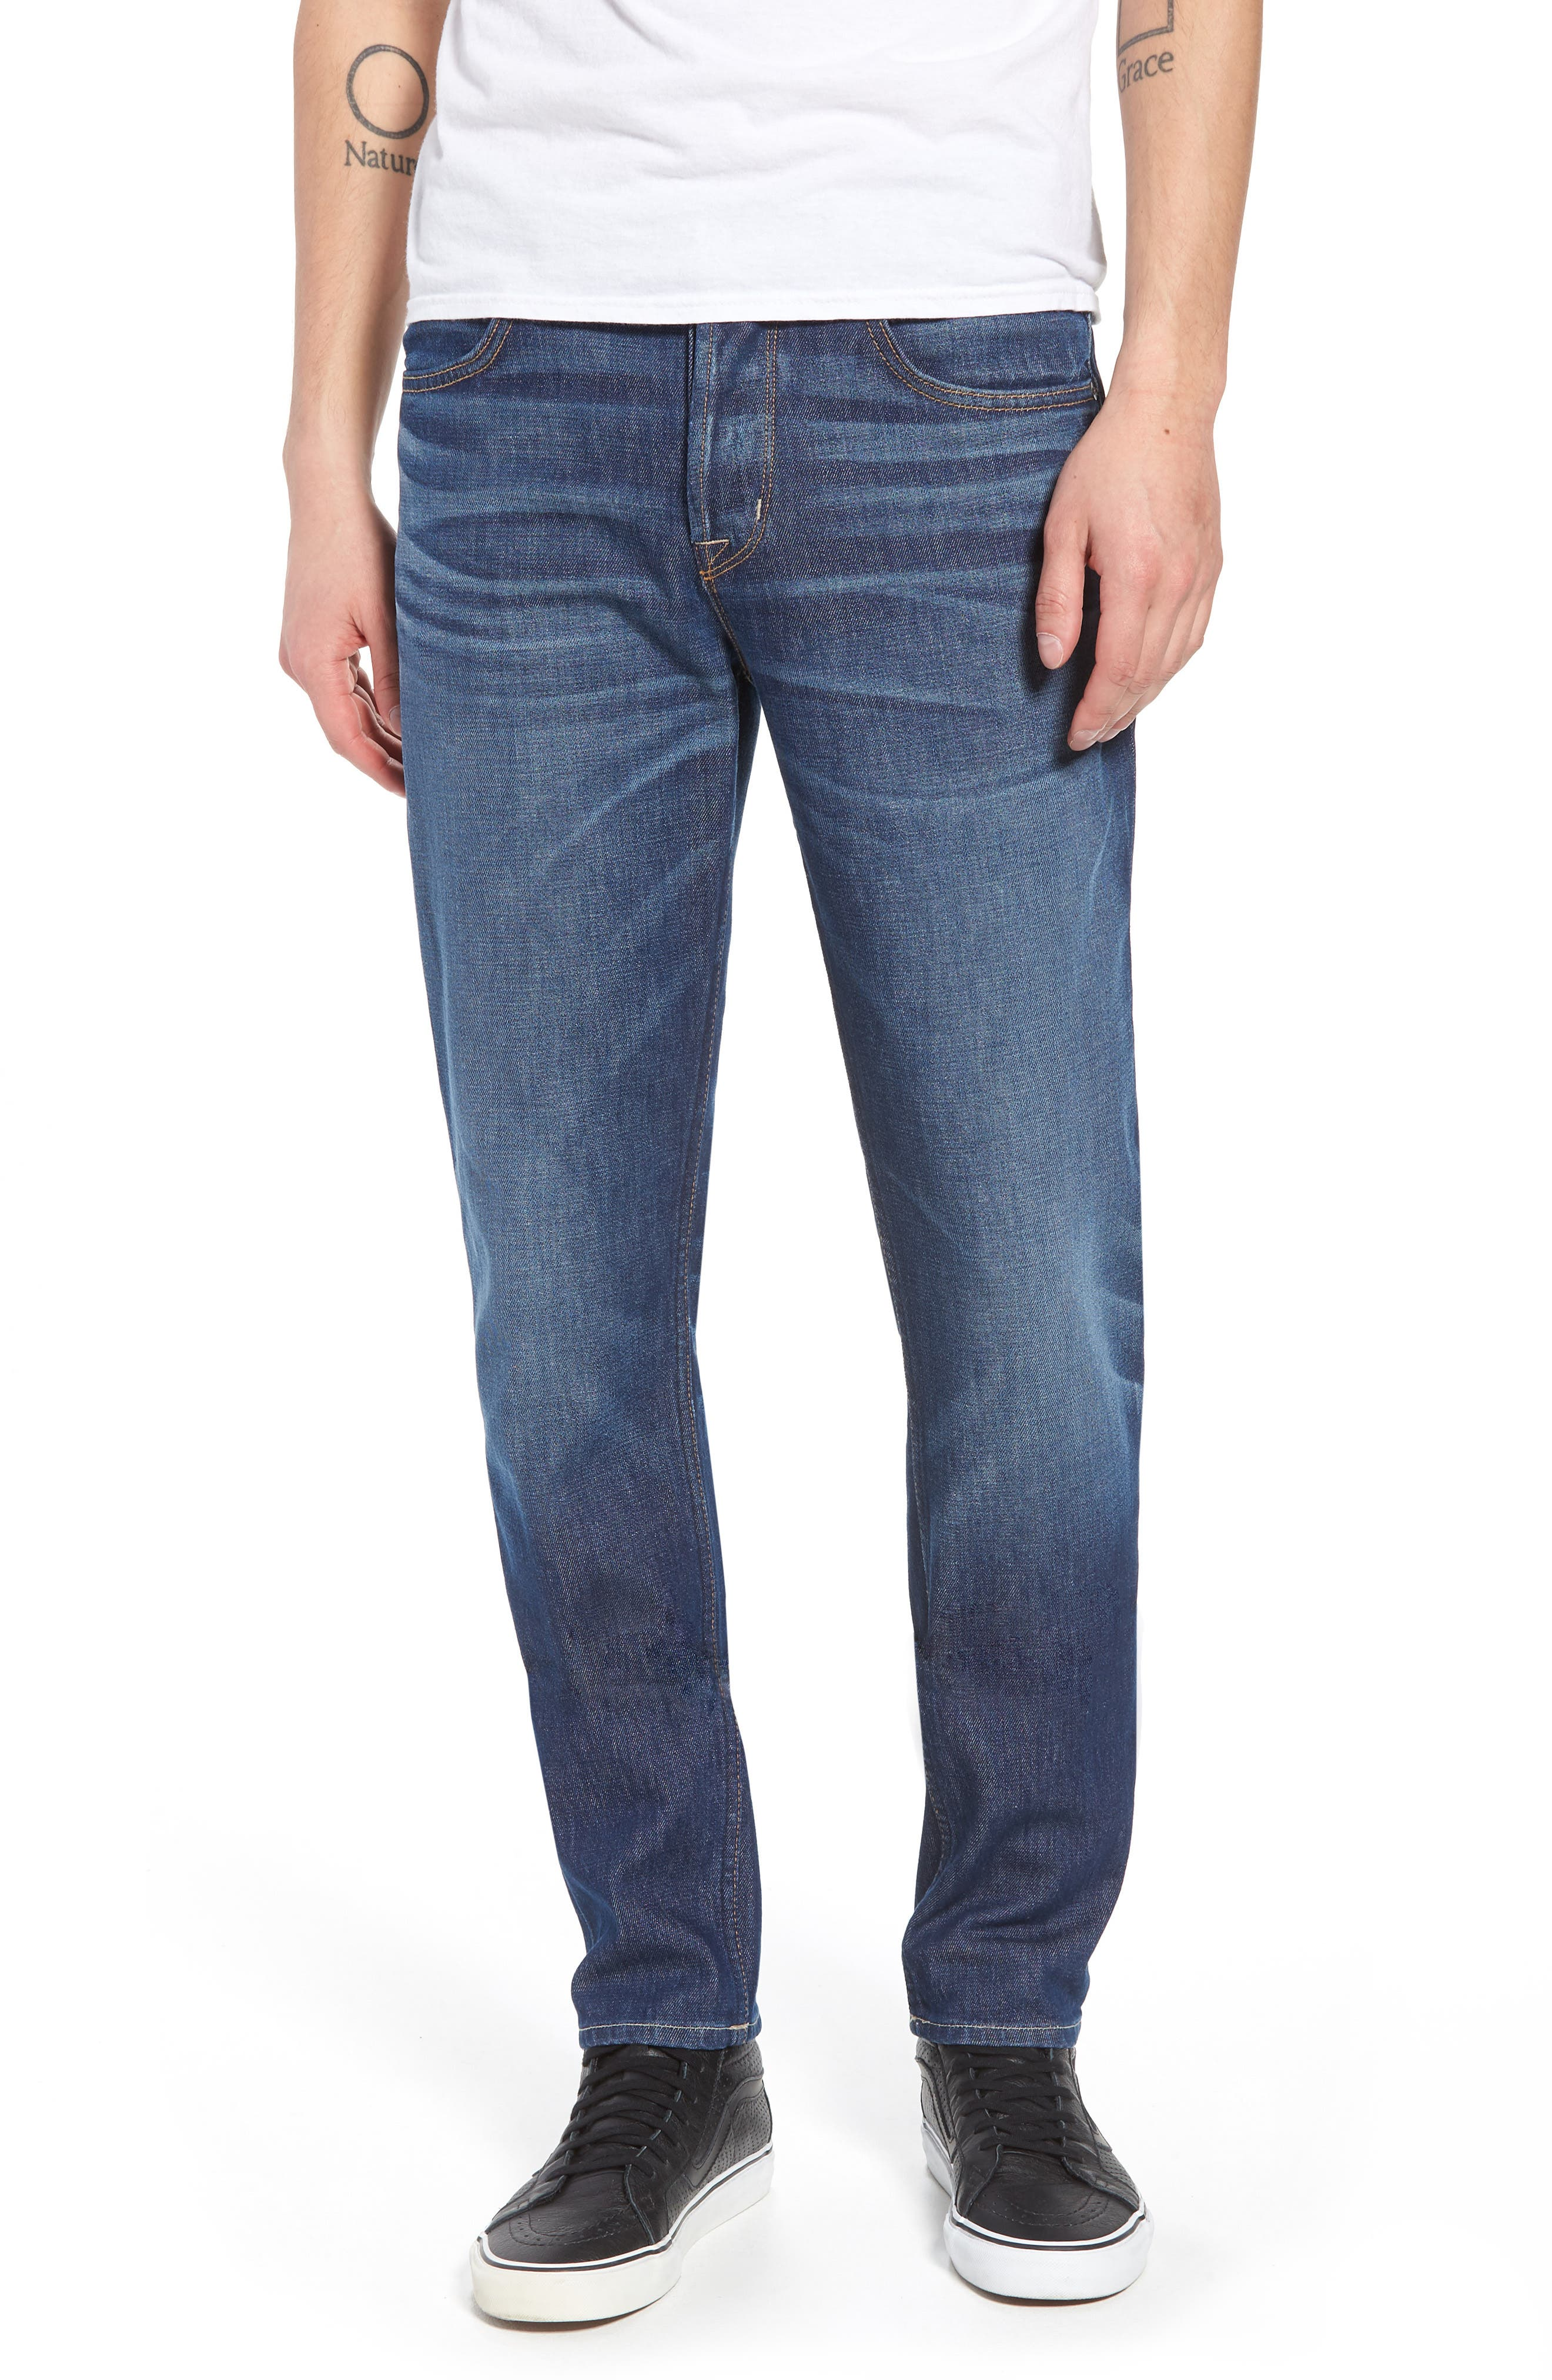 Axl Skinny Fit Jeans,                         Main,                         color, 425